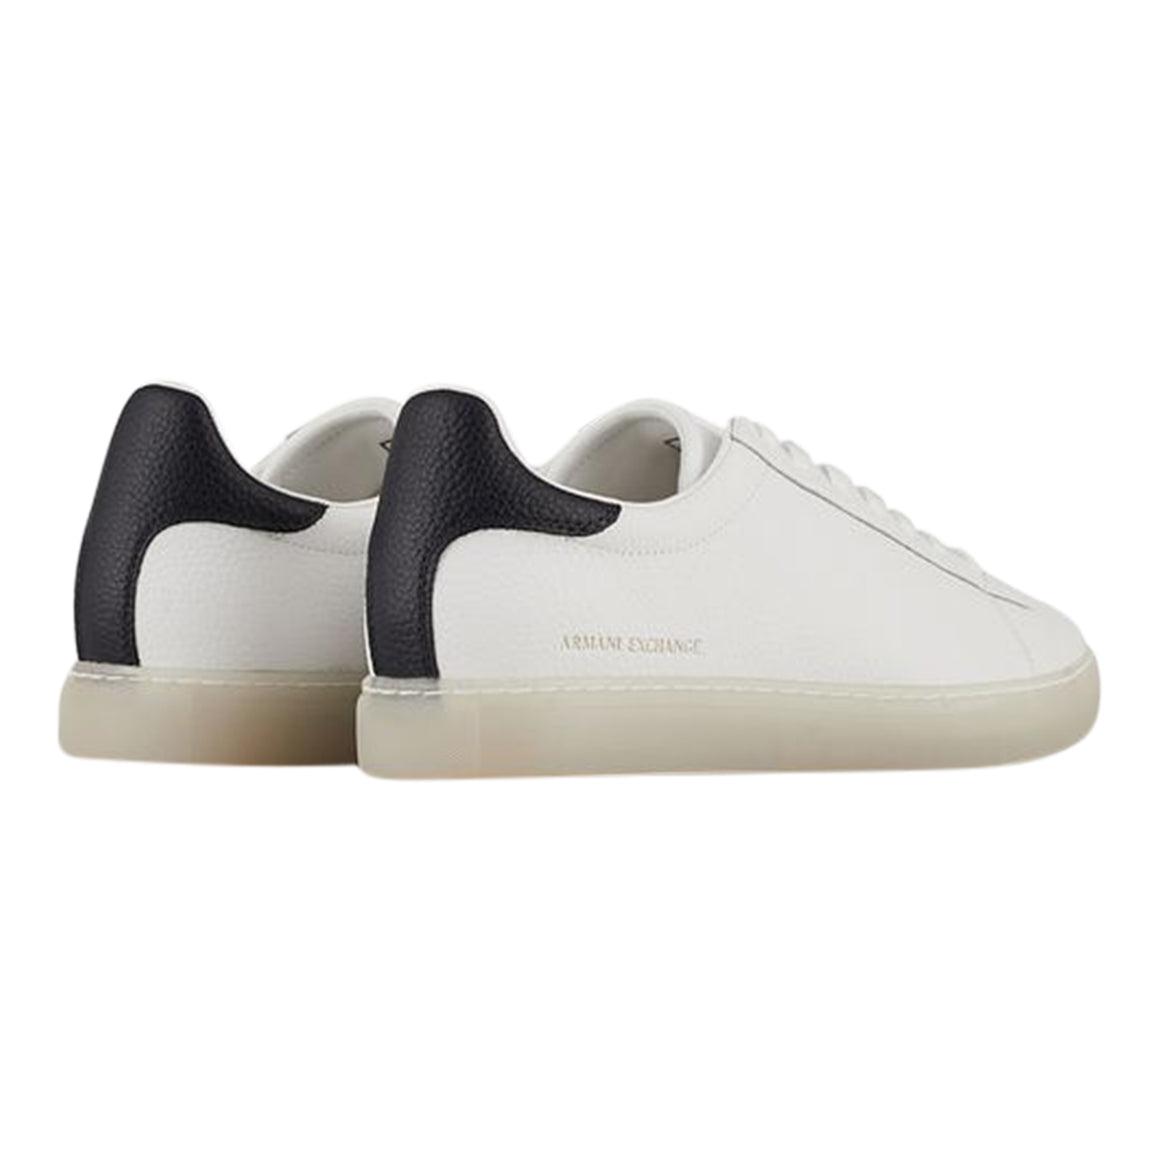 Sneaker for Men in White